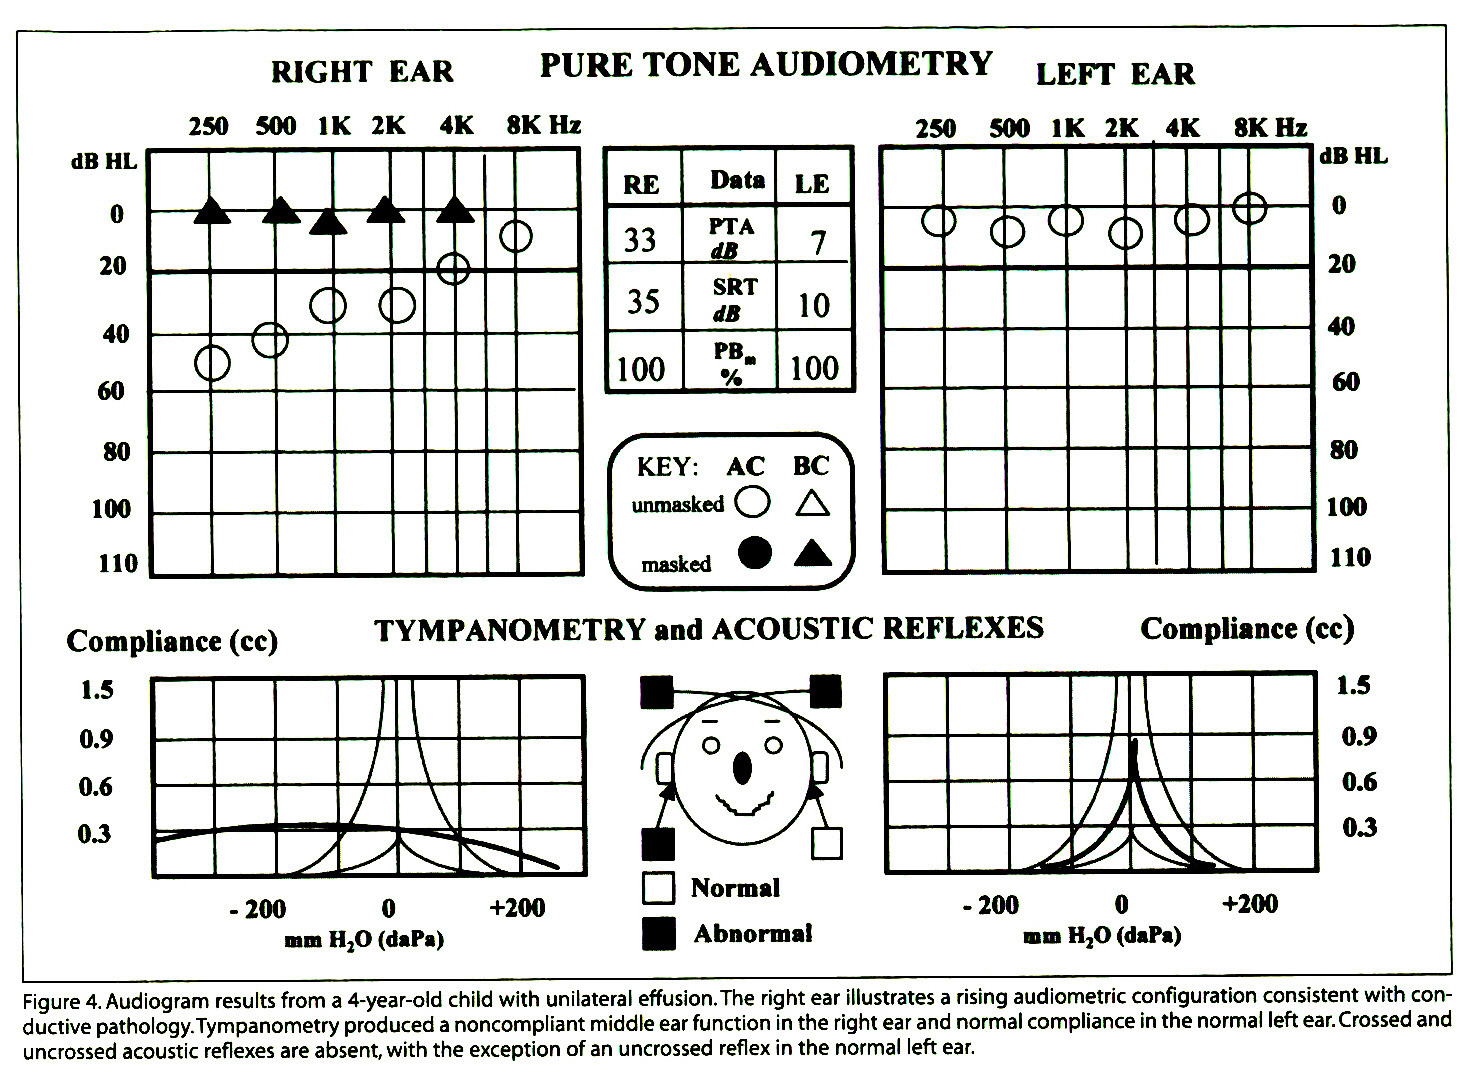 Figure 4. Audiogram results from a 4-year-old child with unilateral effusion.The right ear illustrates a rising audiometrie configuration consistent with conductive pathology. Tympanometry produced a noncompliant middle ear function in the right ear and normal compliance in the normal left ear. Crossed and uncrossed acoustic reflexes are absent, with the exception of an uncrossed reflex in the normal left ear.